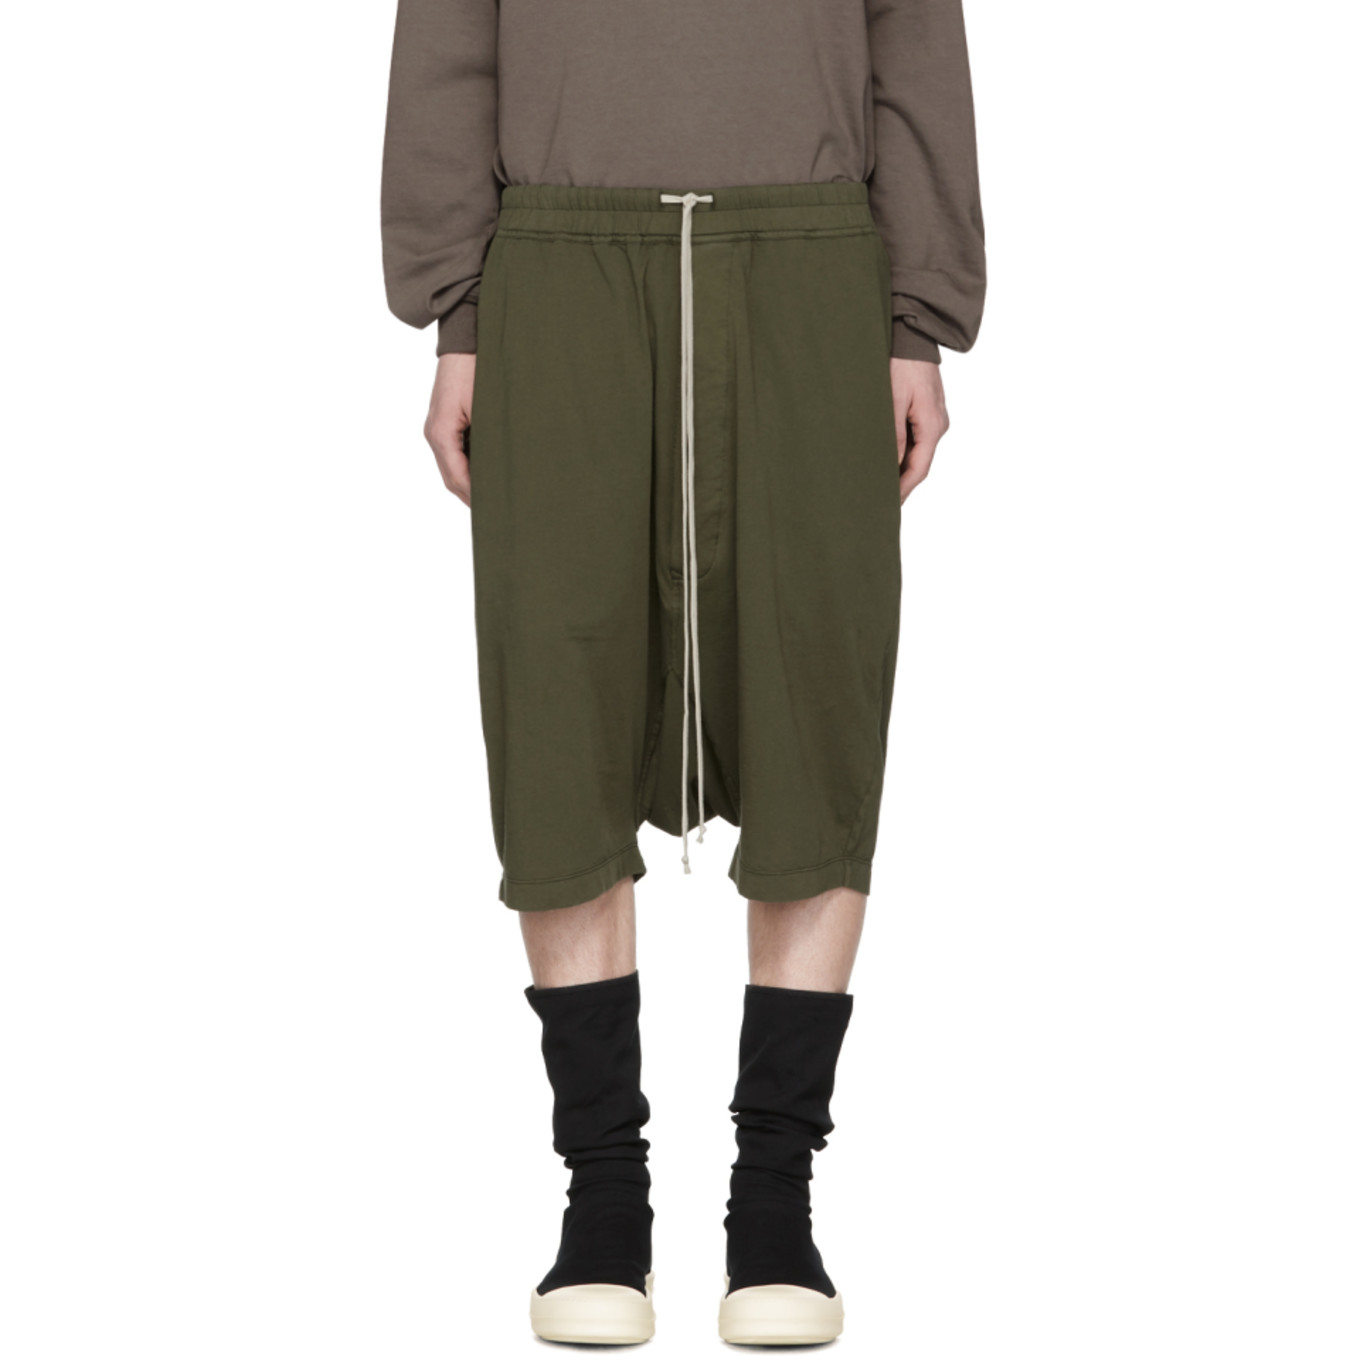 Green Drawstring Pods Shorts by Rick Owens Drkshdw